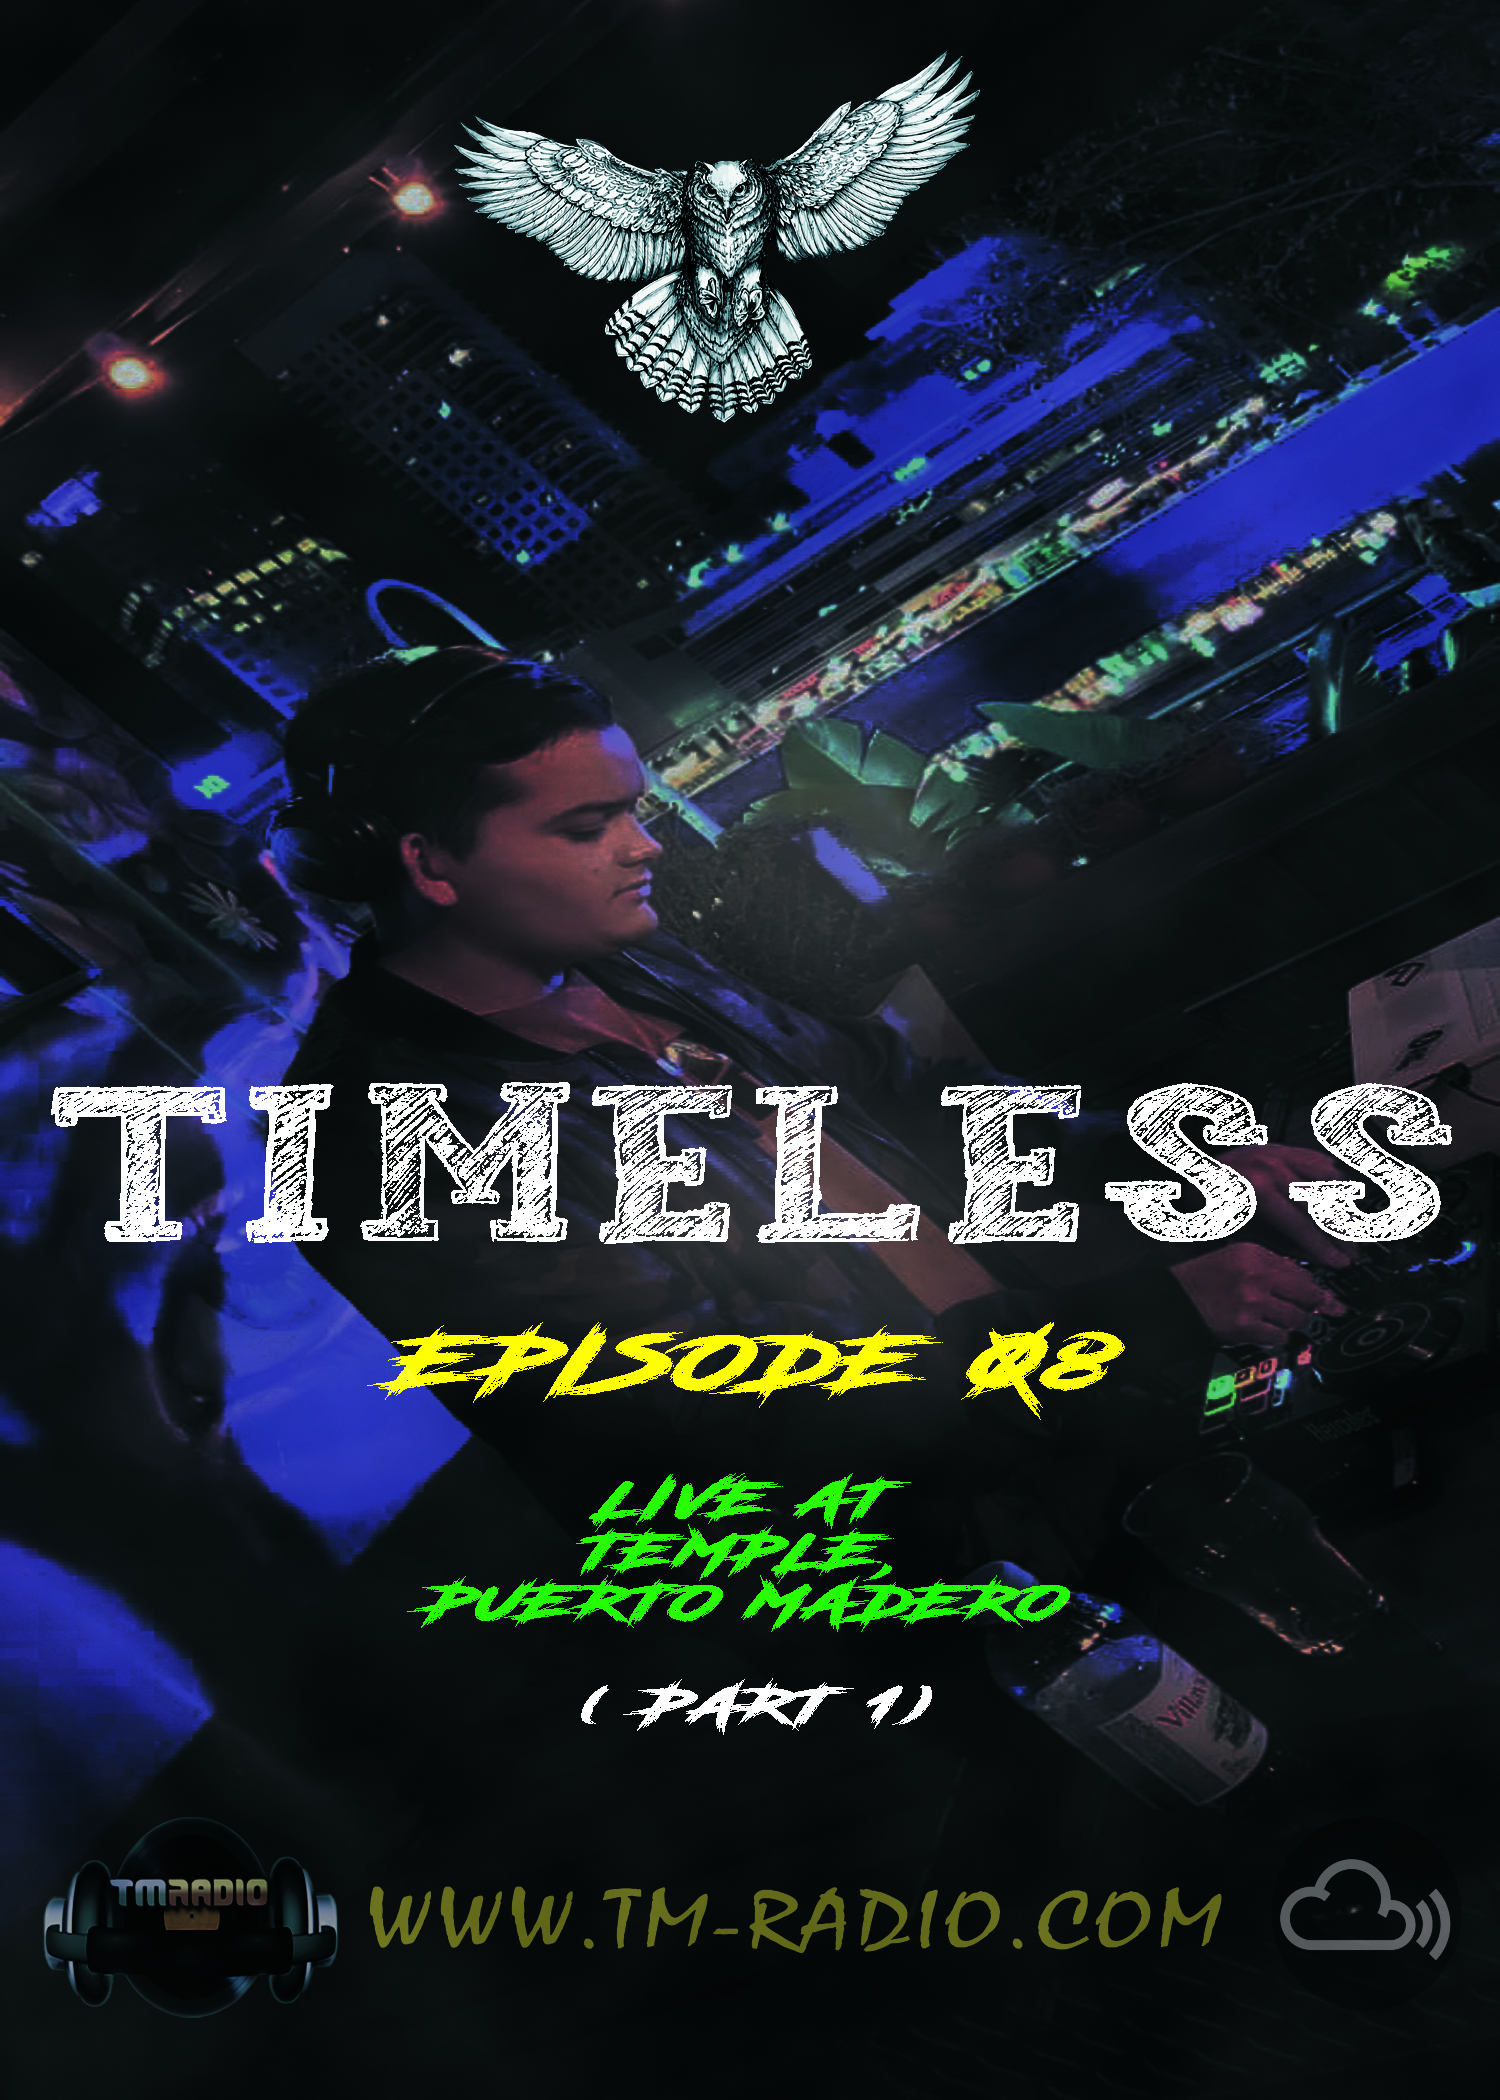 Cris Rosales - Timeless Radioshow Ep. 08 - Live @ Temple, Puerto Madero (Part 1)  - 06-07-2021 (from July 6th)